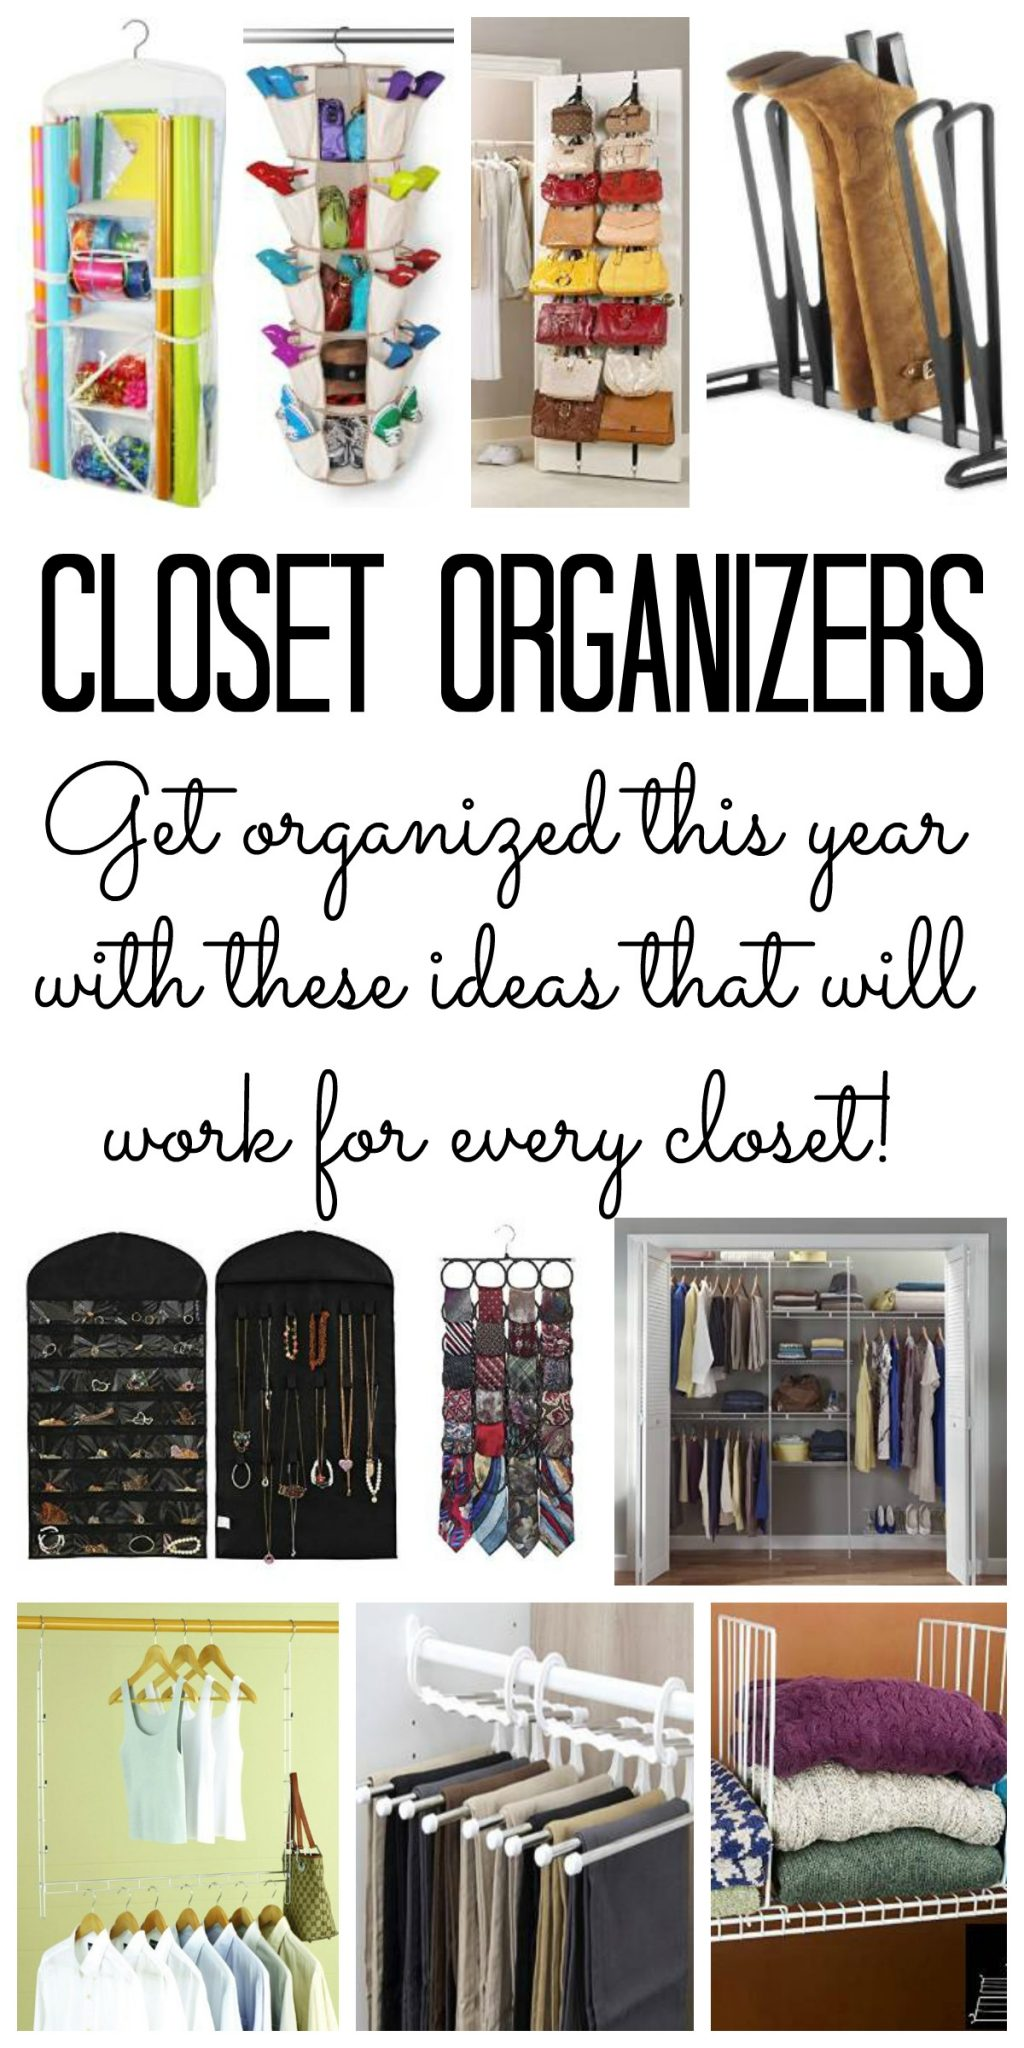 Charmant You Will Love These Closet Organizers For Your Home! Kick Your Closet  Organization Into High